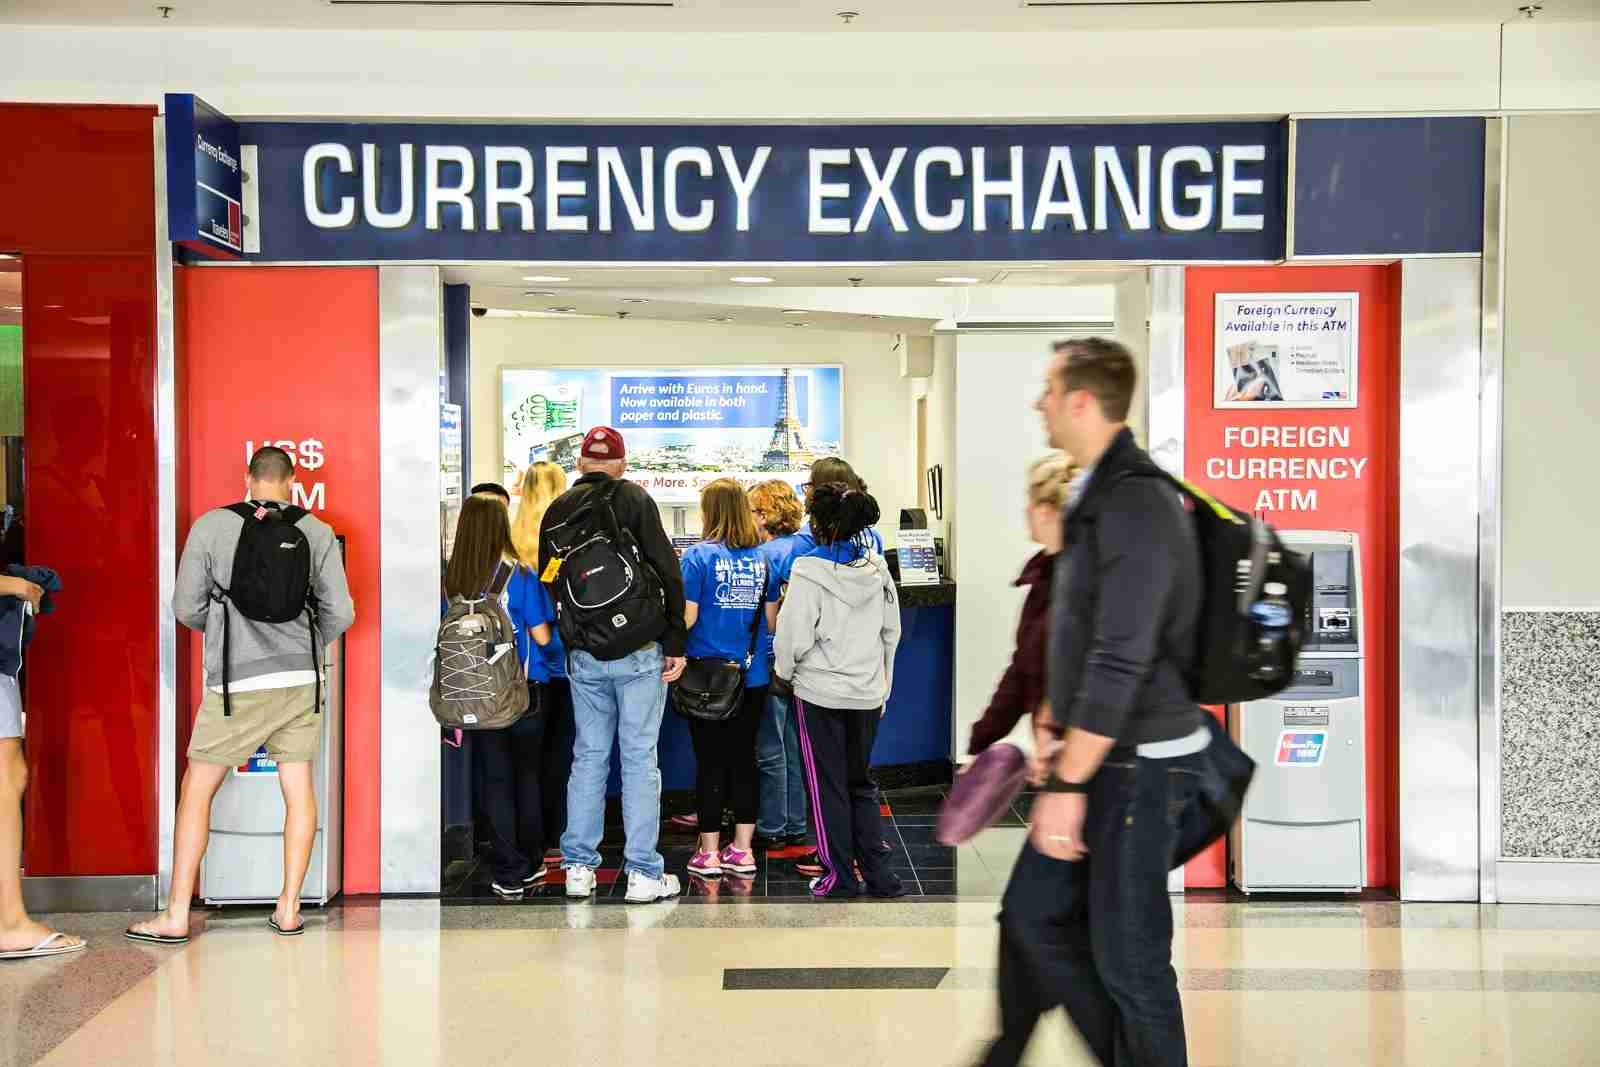 Travelex operates currency exchange locations in many US airports, but customers can find lower-priced services elsewhere.